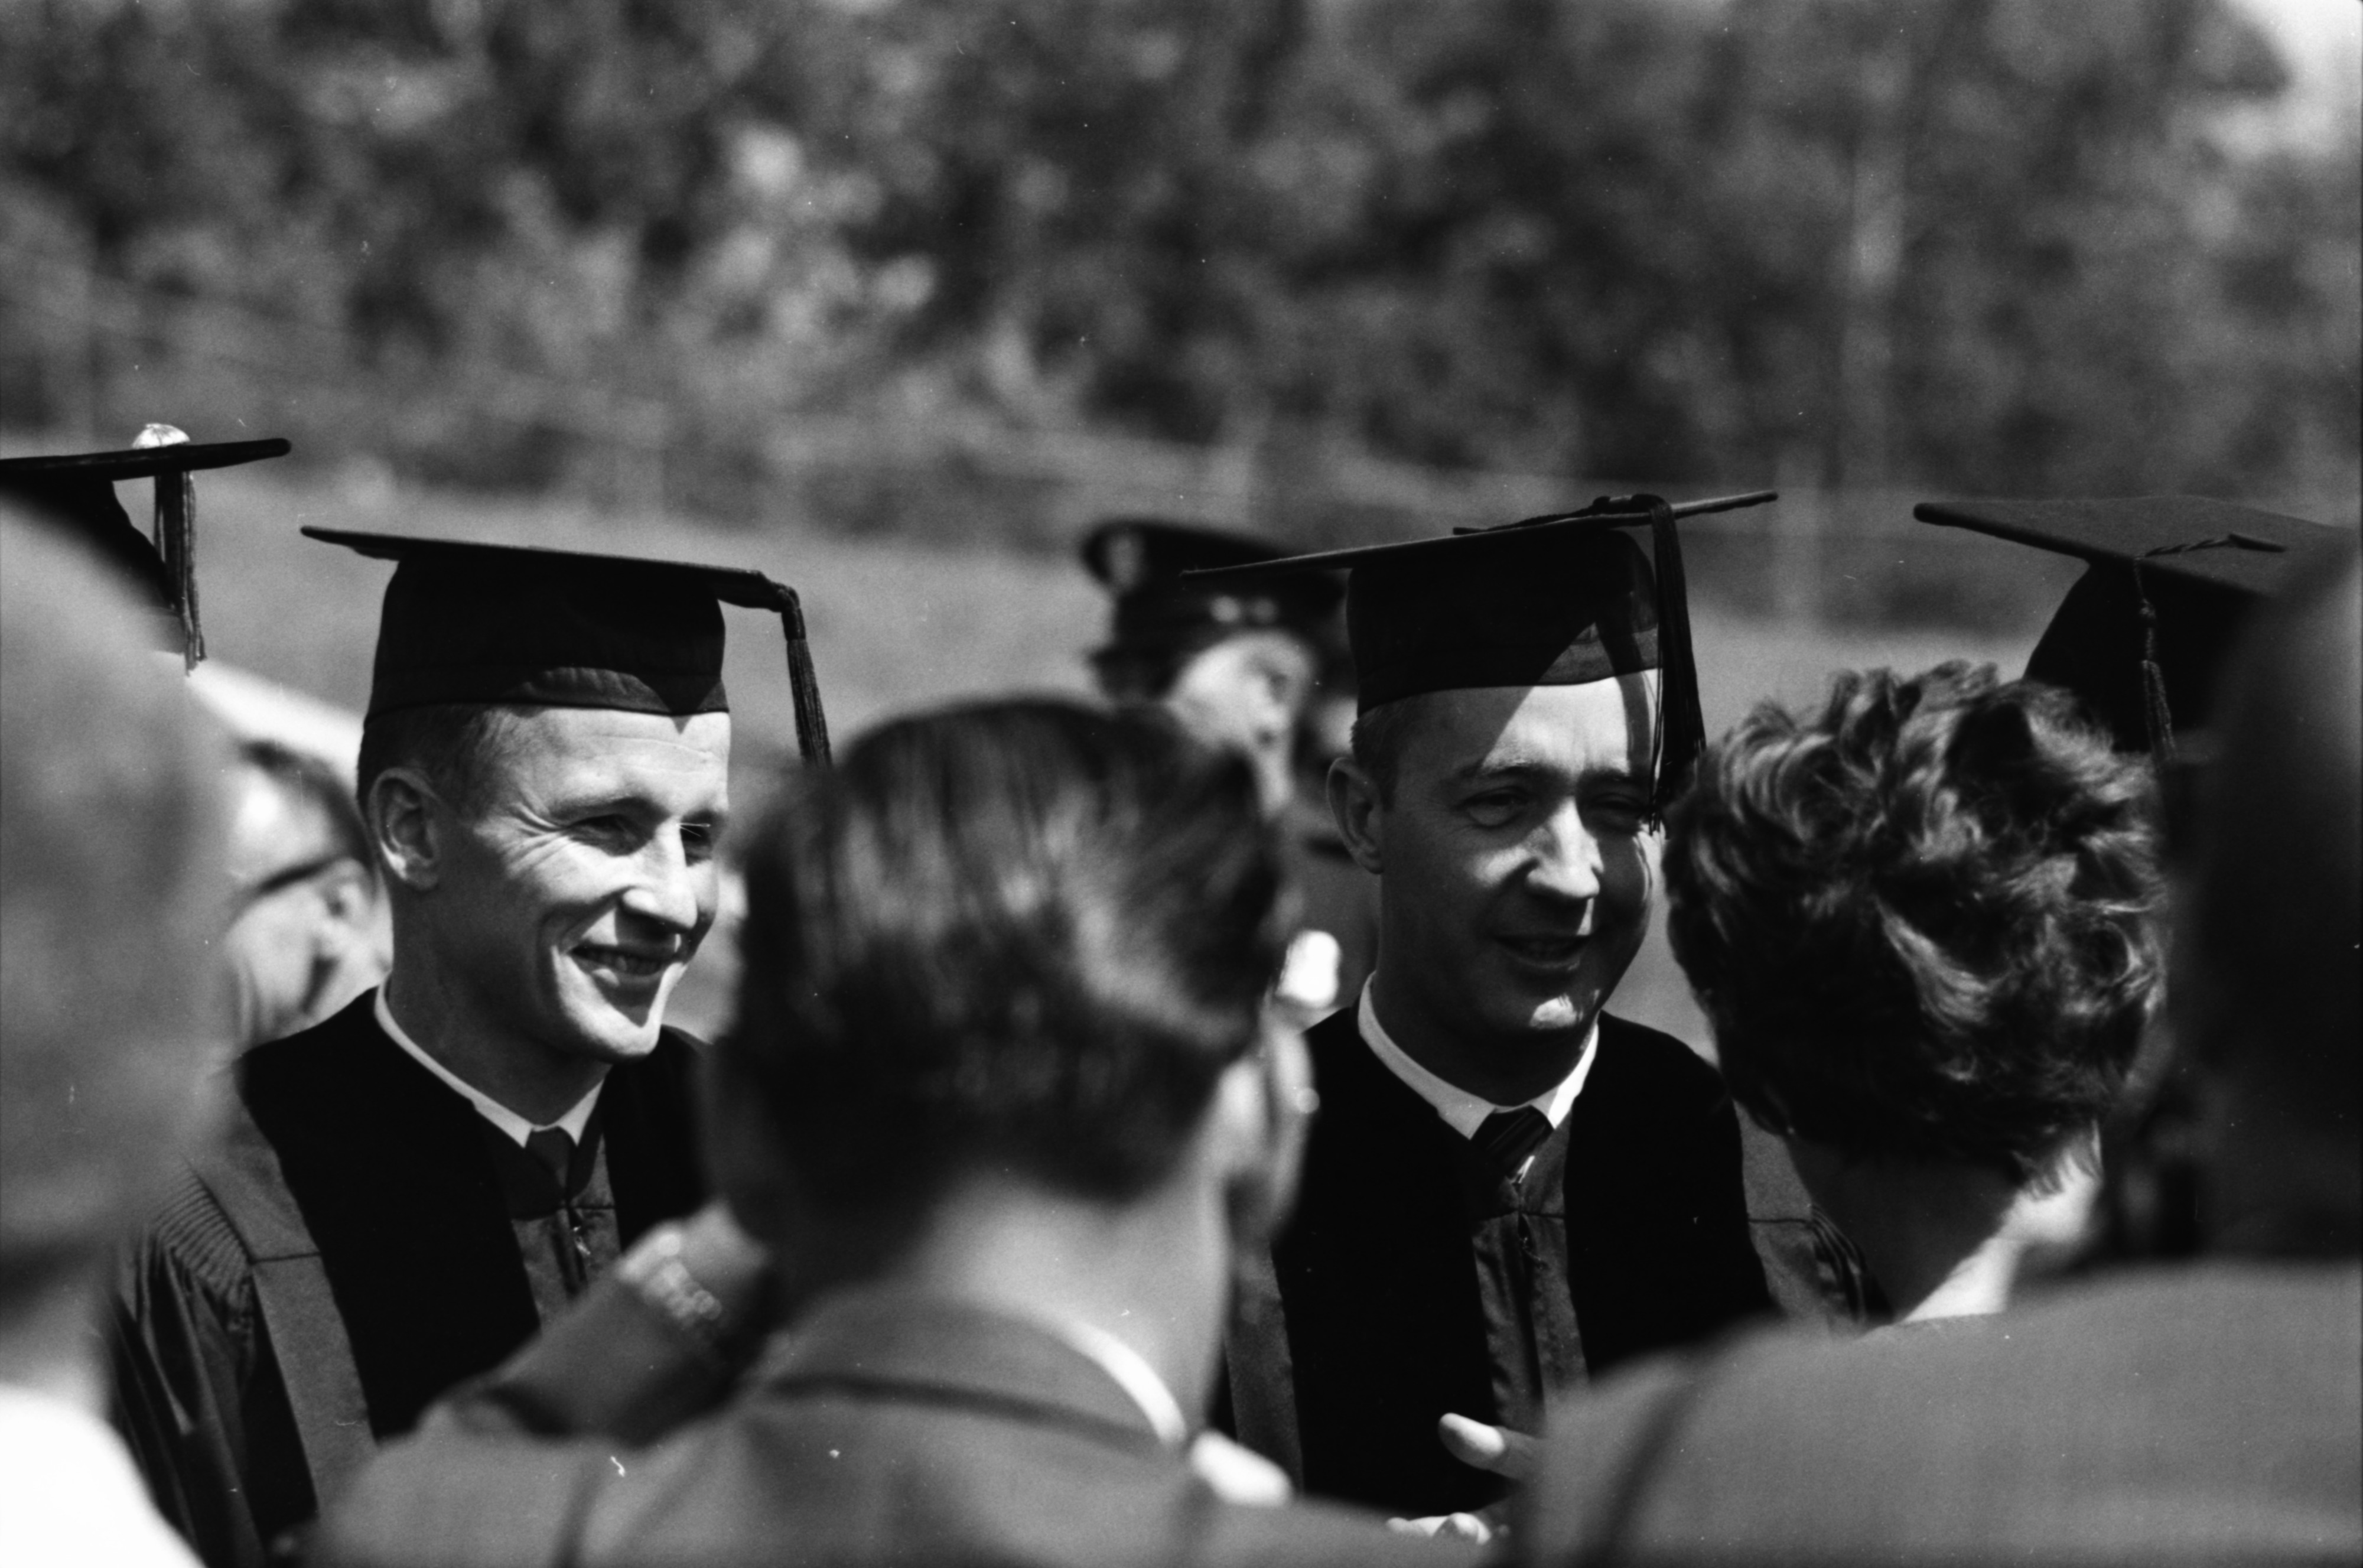 Astronauts James A. McDivitt and Edward H. White II Honored at Convocation, June 1965 image